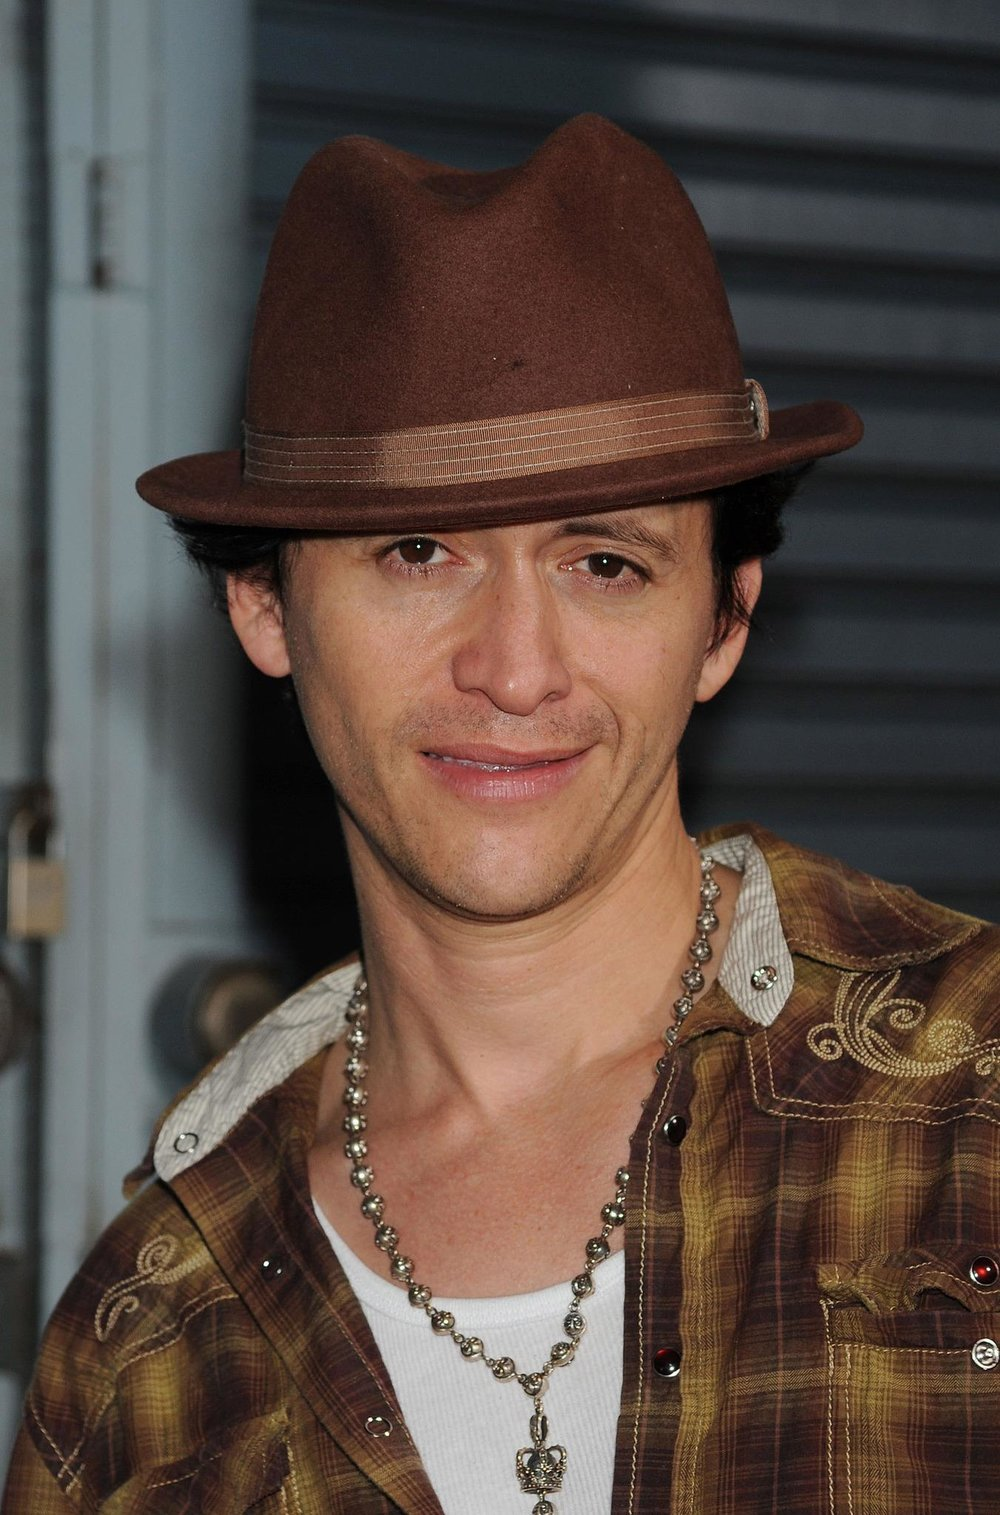 clifton-collins-jr.-at-event-of-machete-(2010)-large-picture.jpg